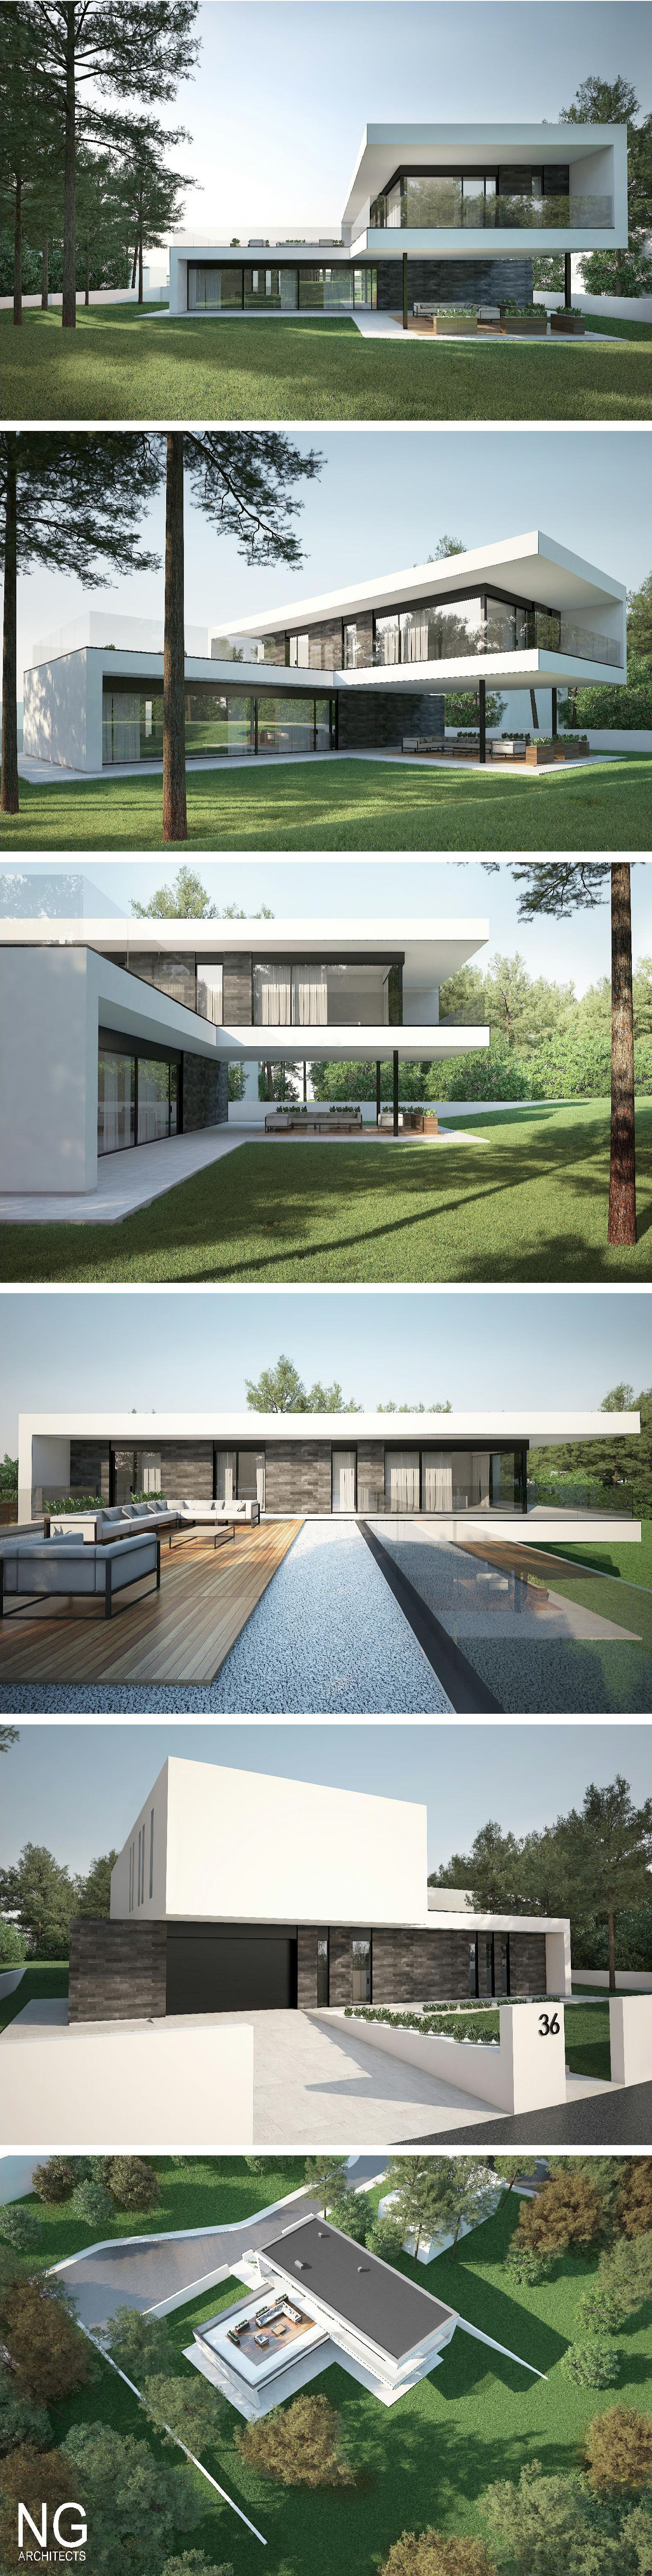 Modern house in Kaunas by NG architects www.ngarchitects.eu | NG ...